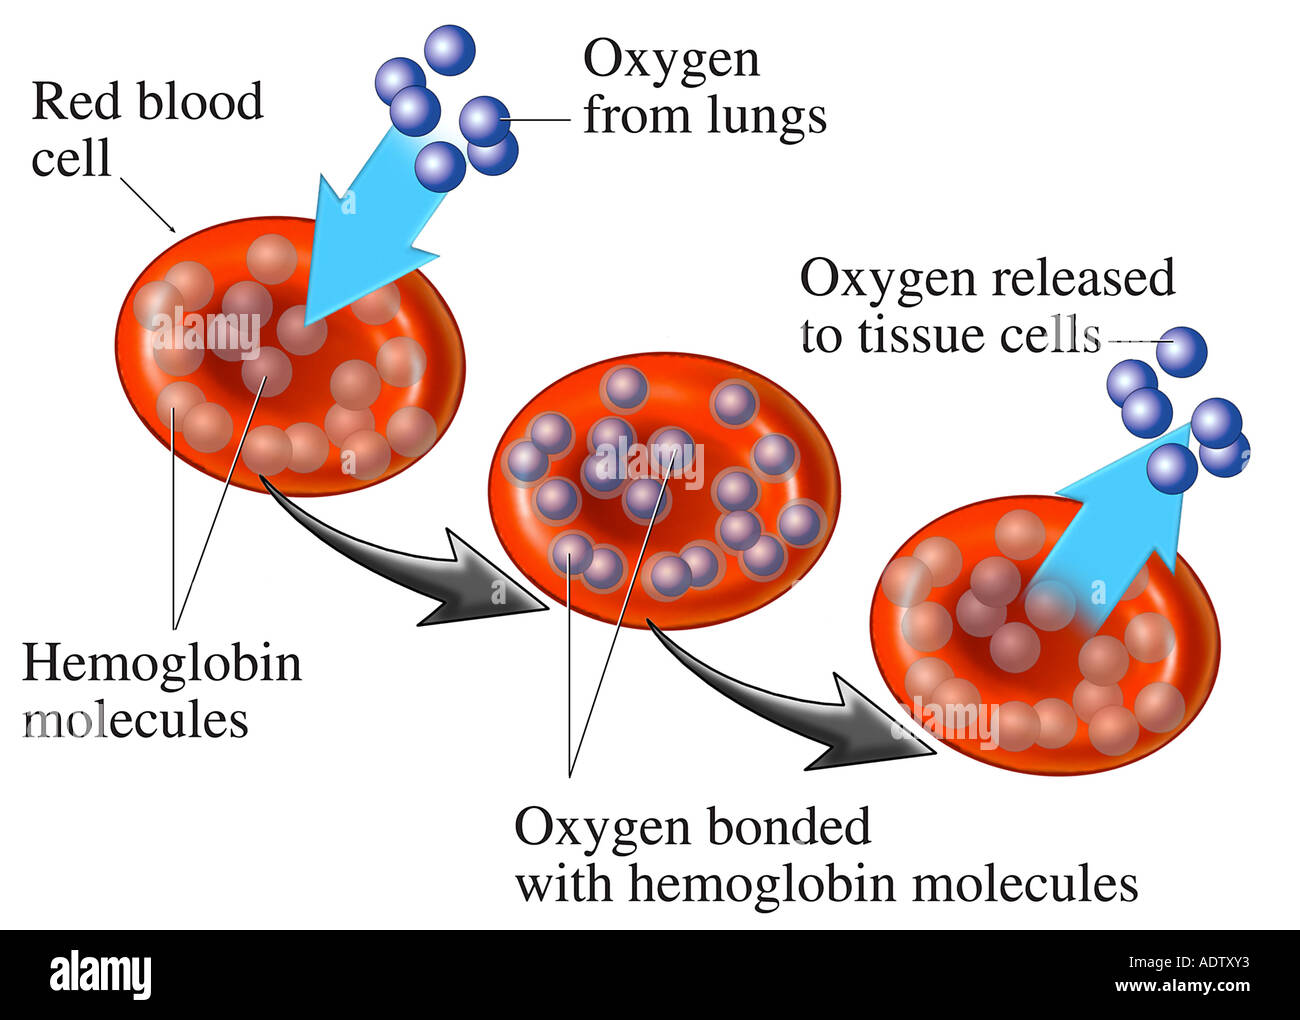 Rbc cell stock photos rbc cell stock images alamy ed blood cell rbc hemoglobin stock image pooptronica Gallery